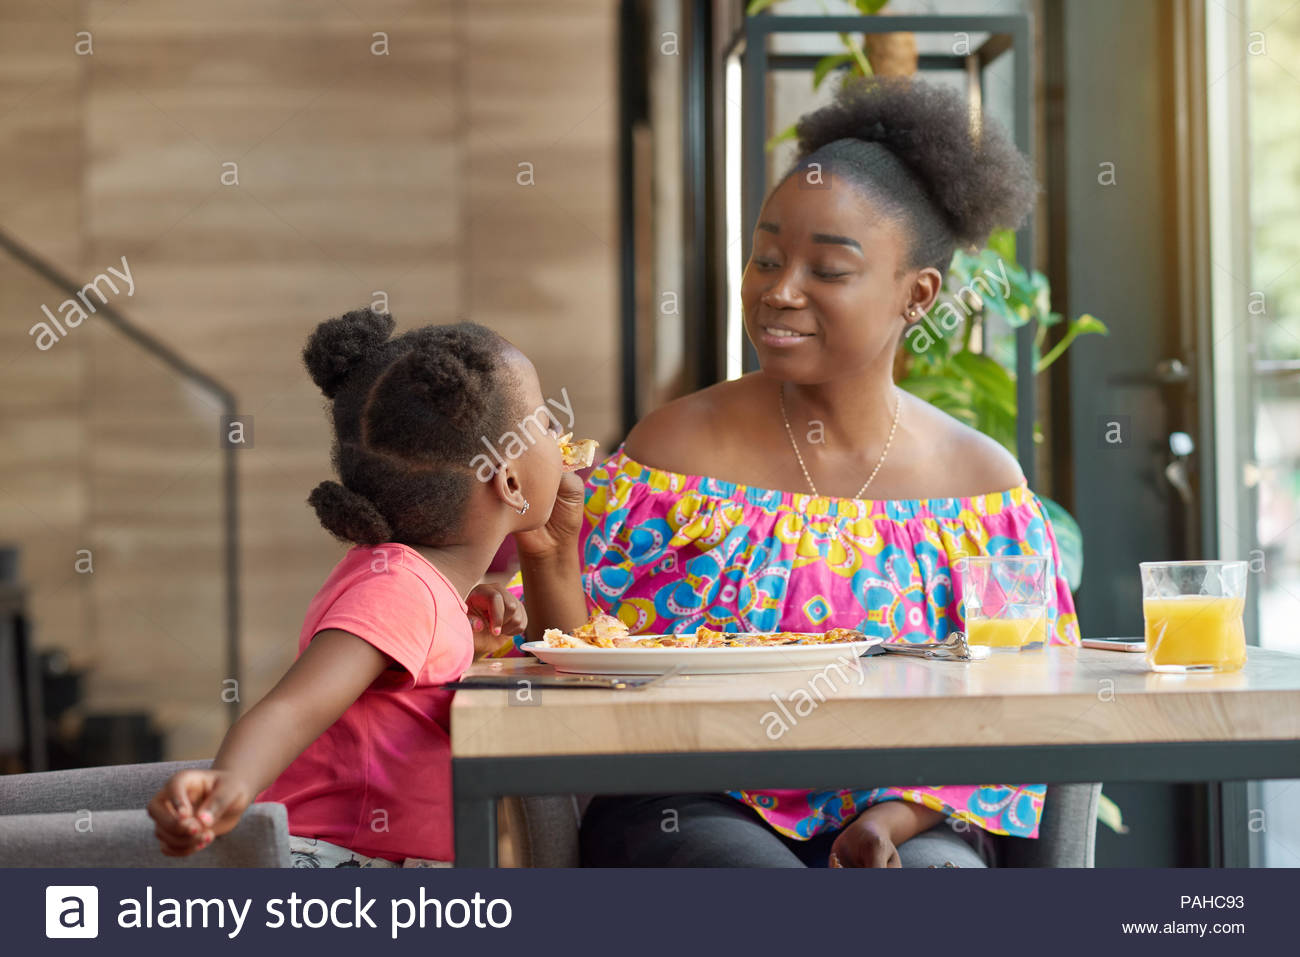 Smiling mother feeding child delicious pizza sitting in local cafe. Happy, having good mood, wonderful time together, lovely family. Other clients sitting in cafe's background. Loft interior. - Stock Image